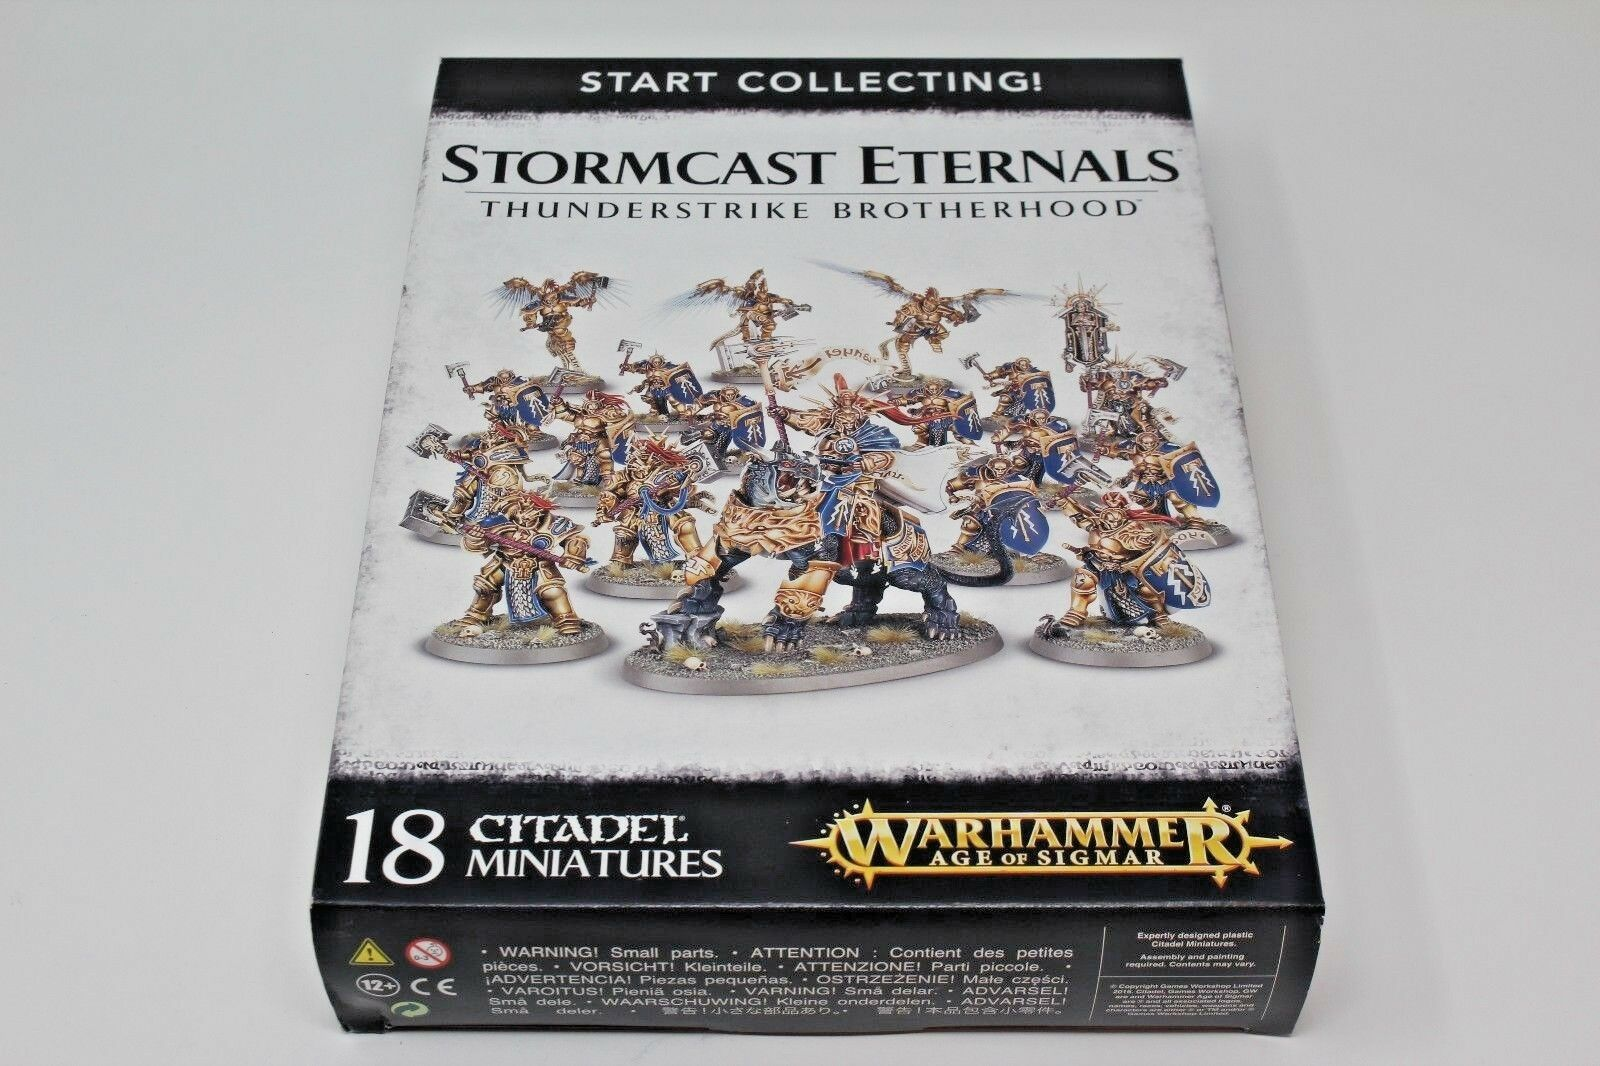 Warhammer Stormcast Eternals Thunderstrike Brotherhood Start Collecting